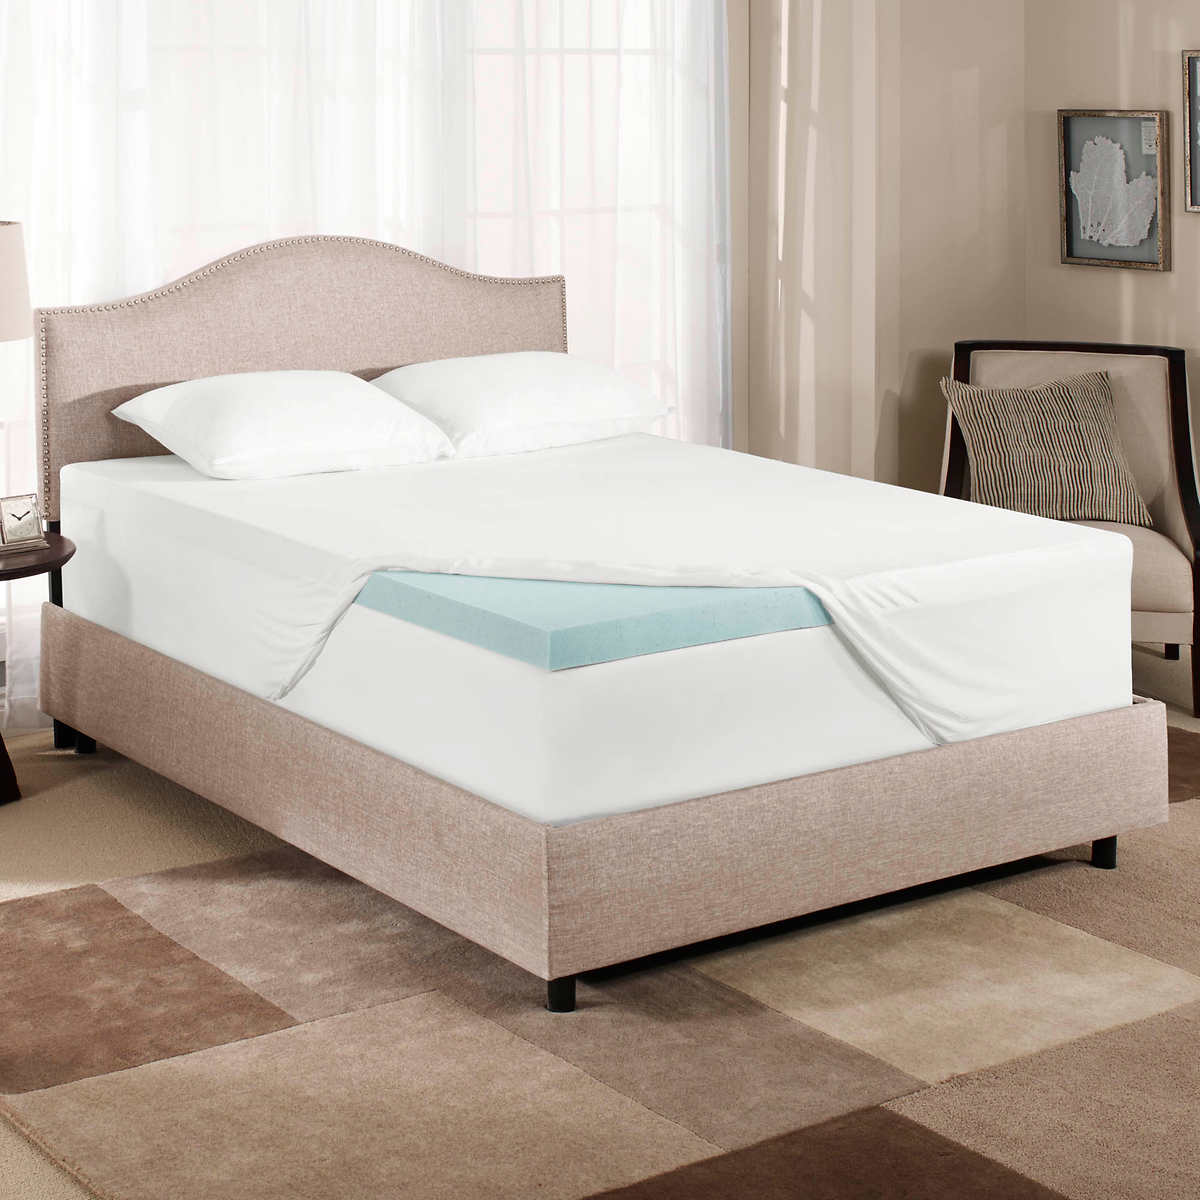 Novaform Comfortluxe Gel Memory Foam Mattress Topper 1